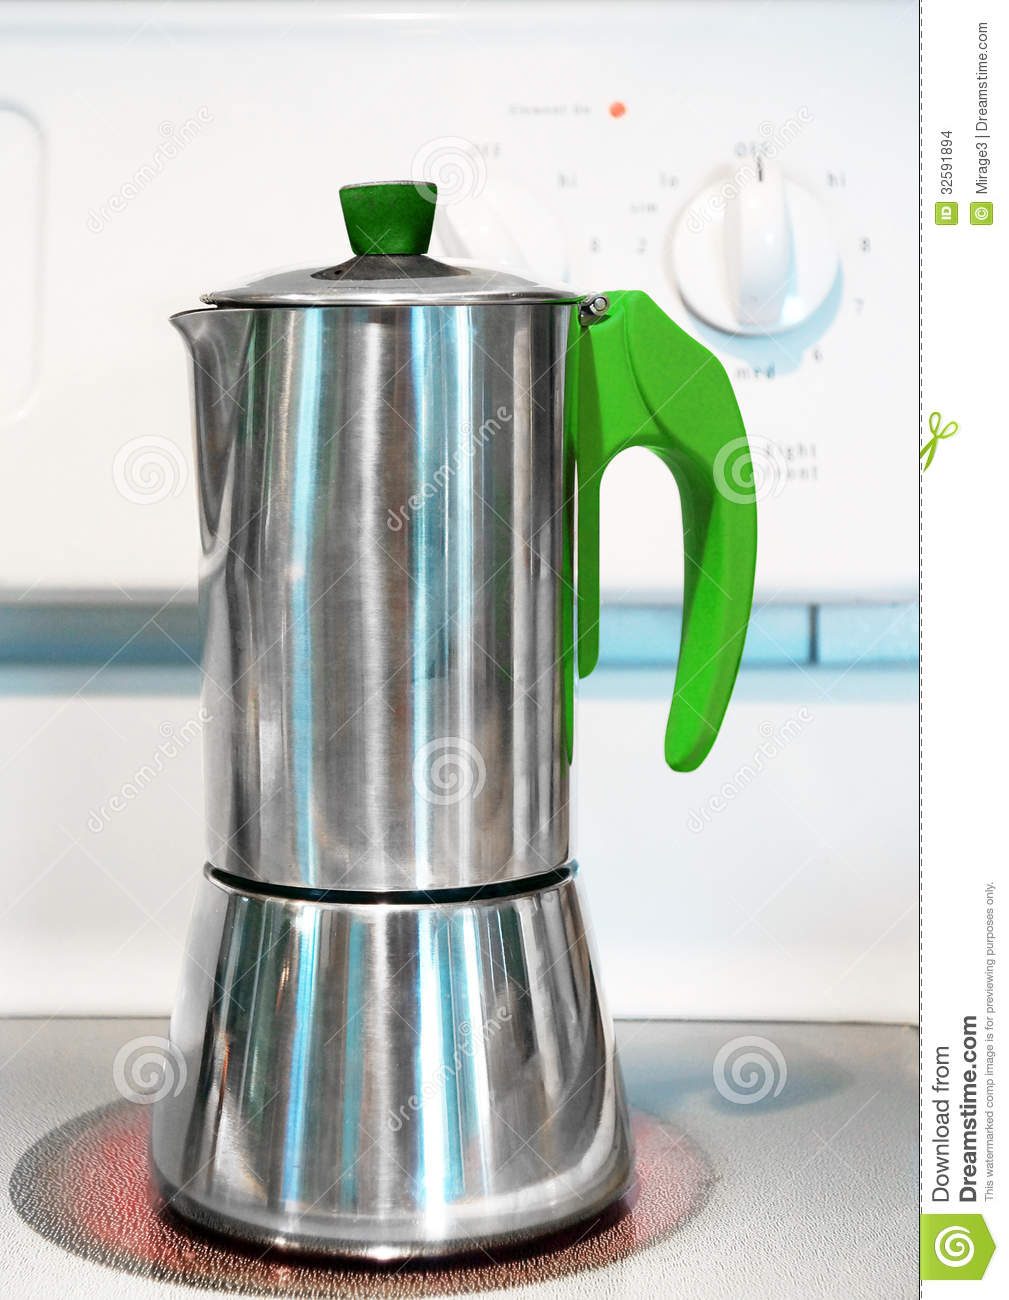 Italian Coffee Maker On Stove Stock Images - Image: 32591894